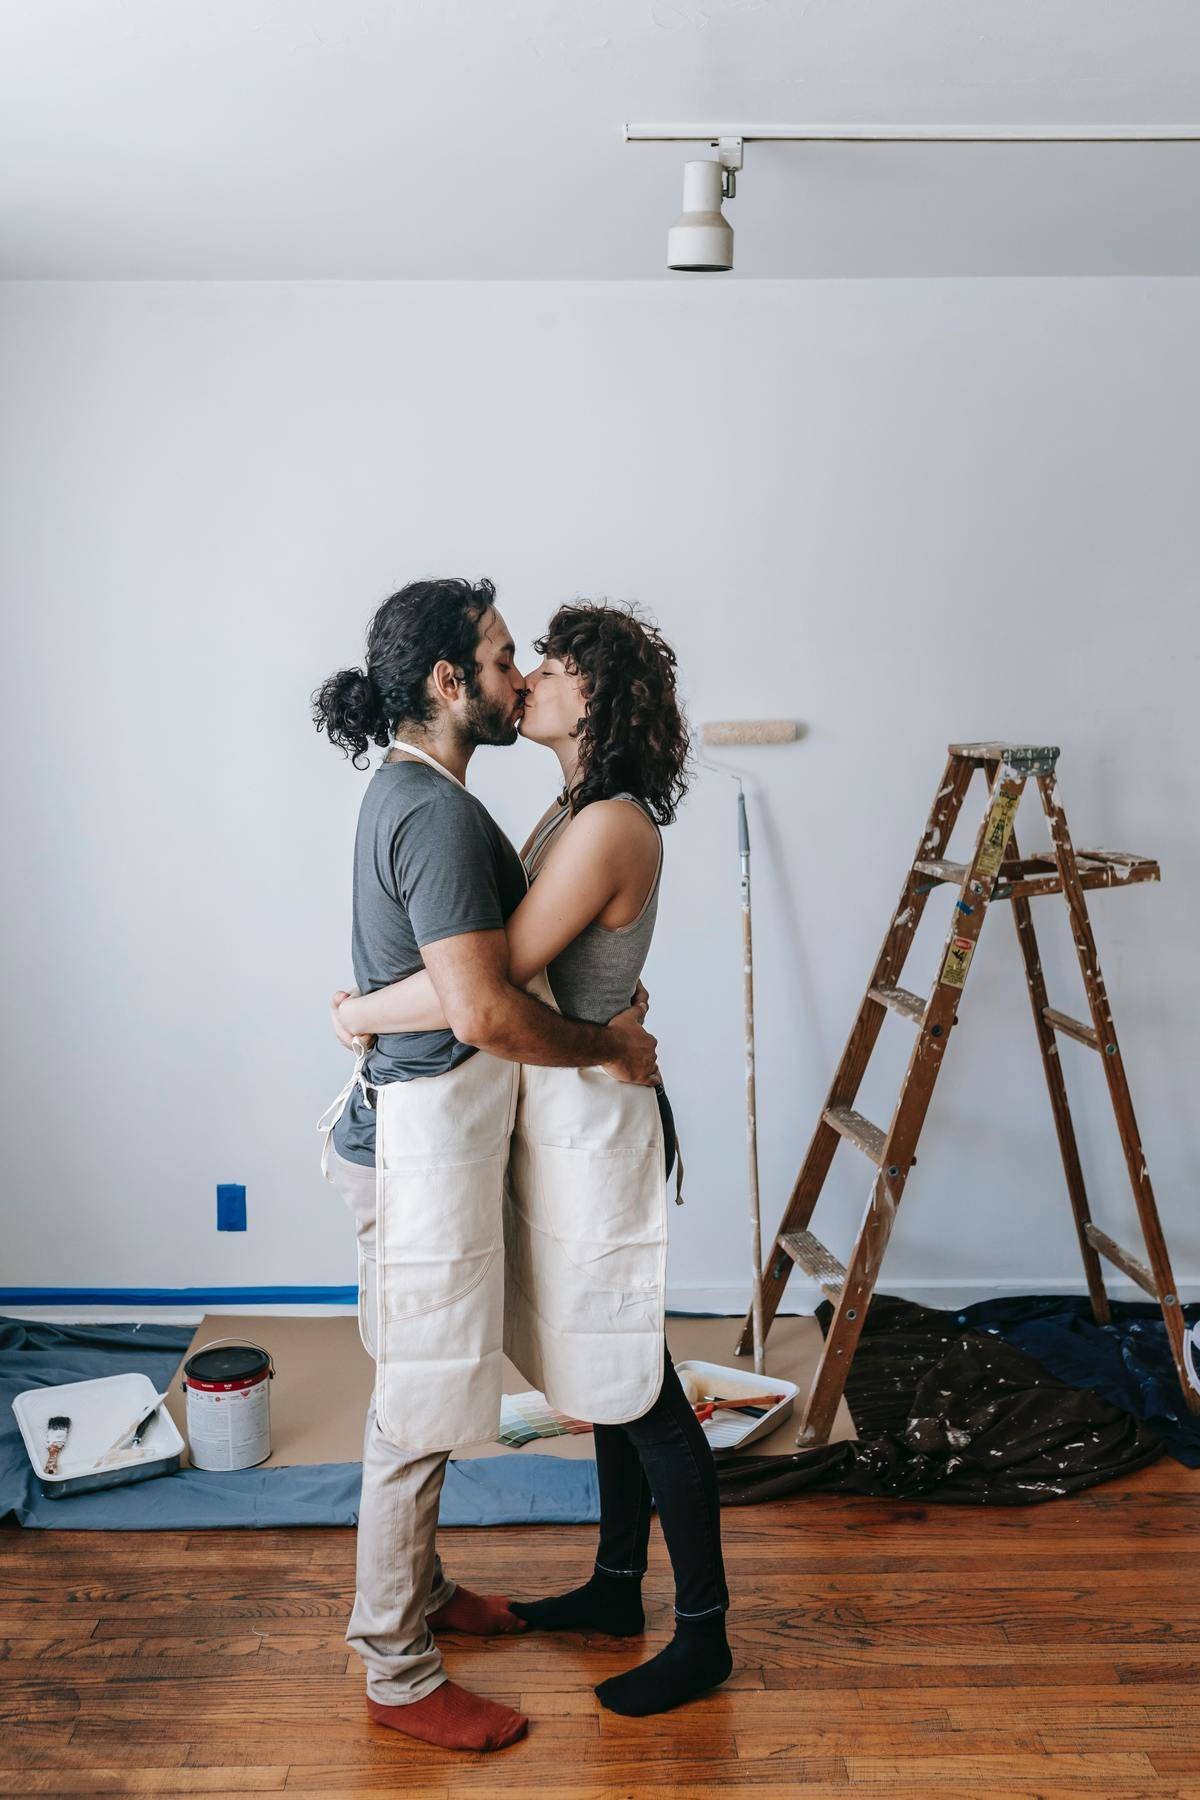 Couple takes a break from painting to kiss